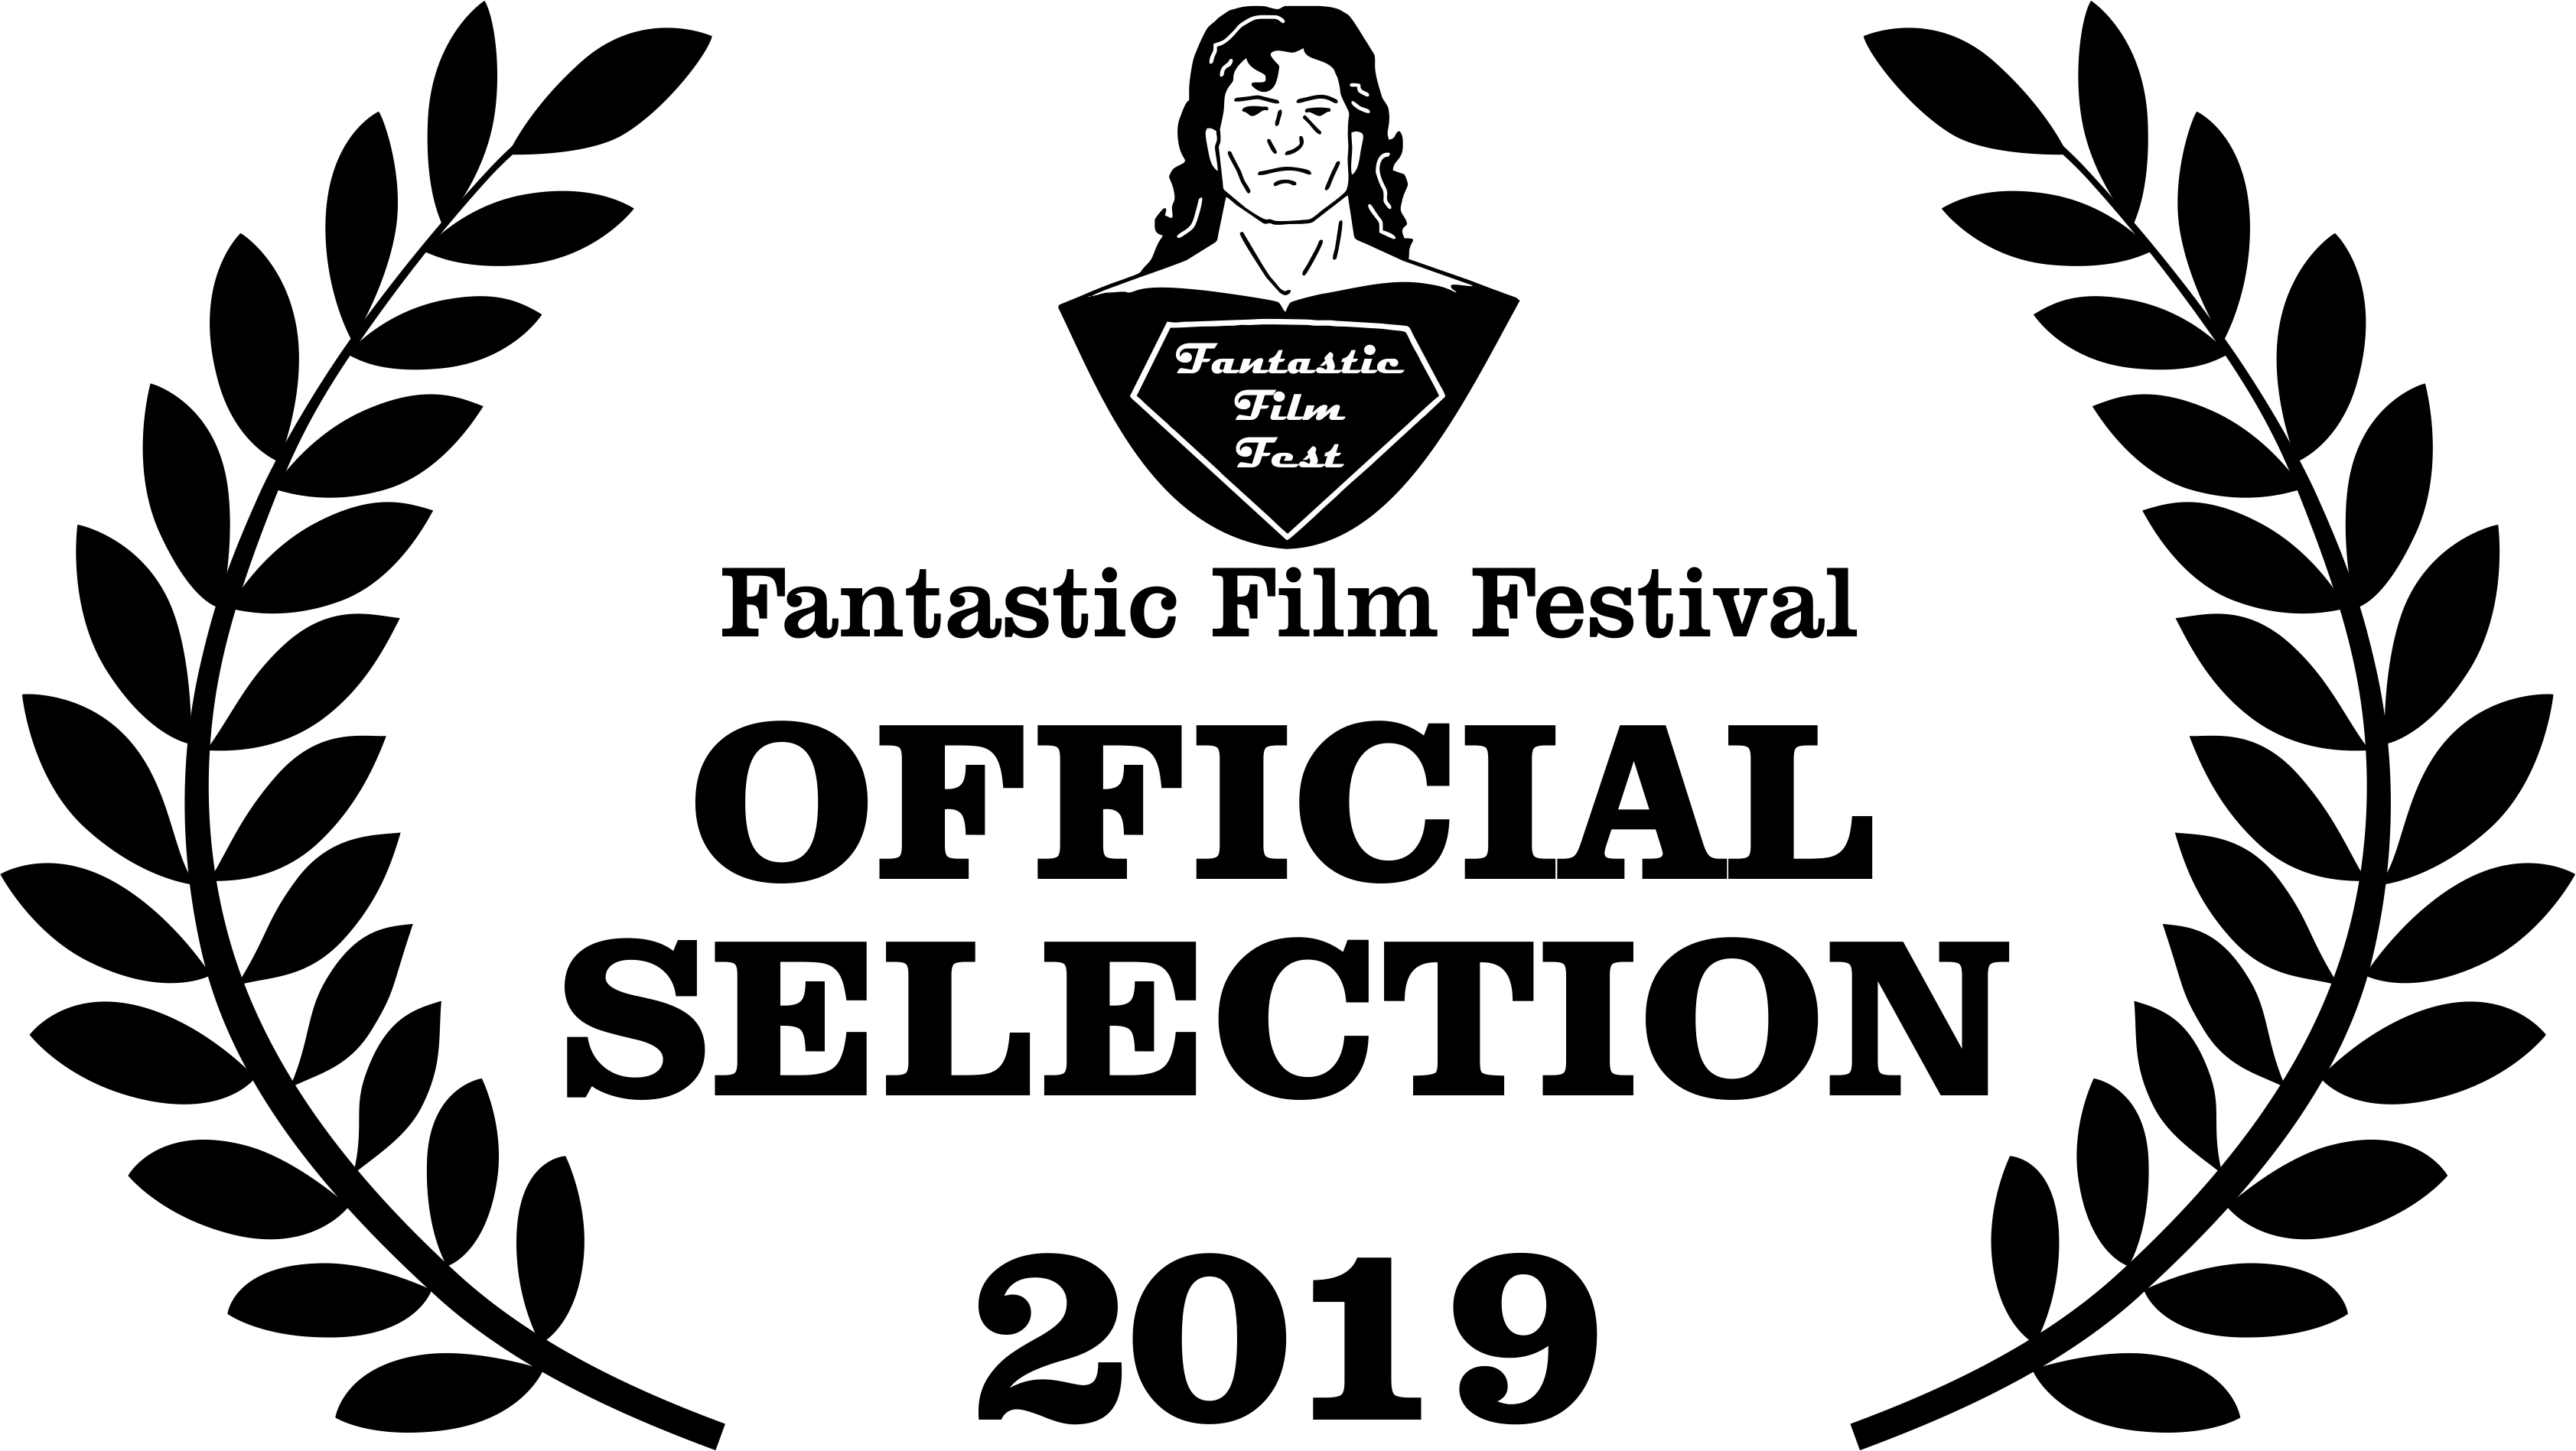 official selection FANTASTIC b - Lavender's Blue released publically after a year on festival circuit